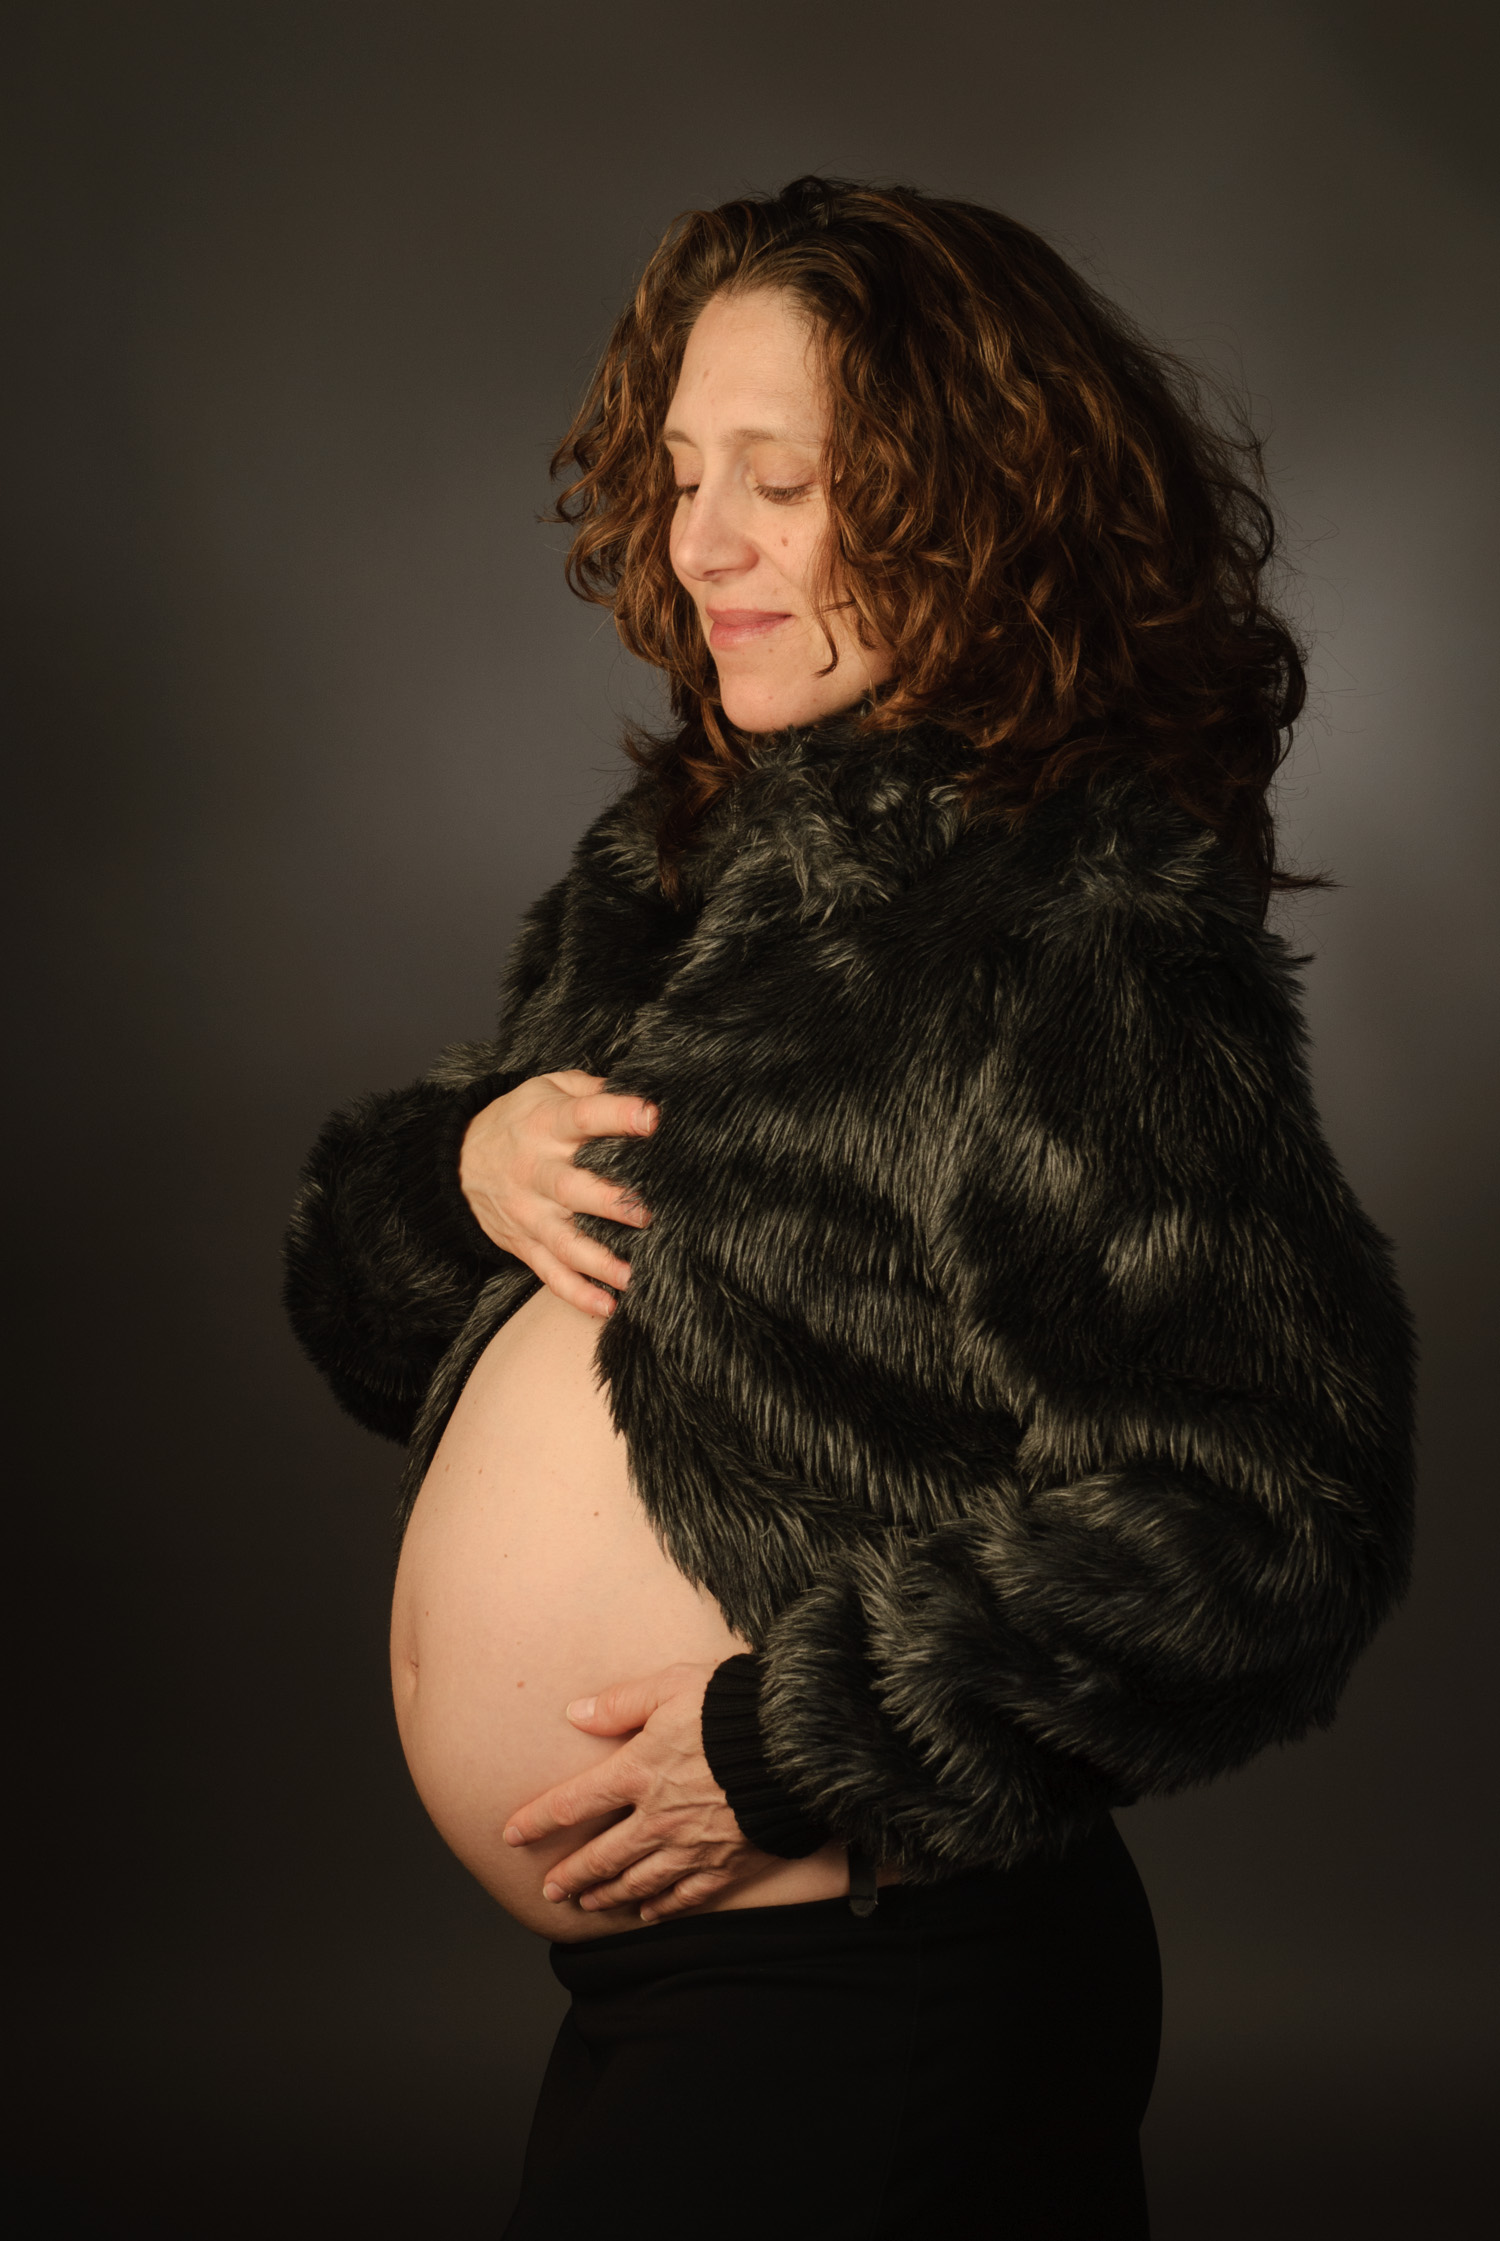 maternity-photography-nyc-36.jpg